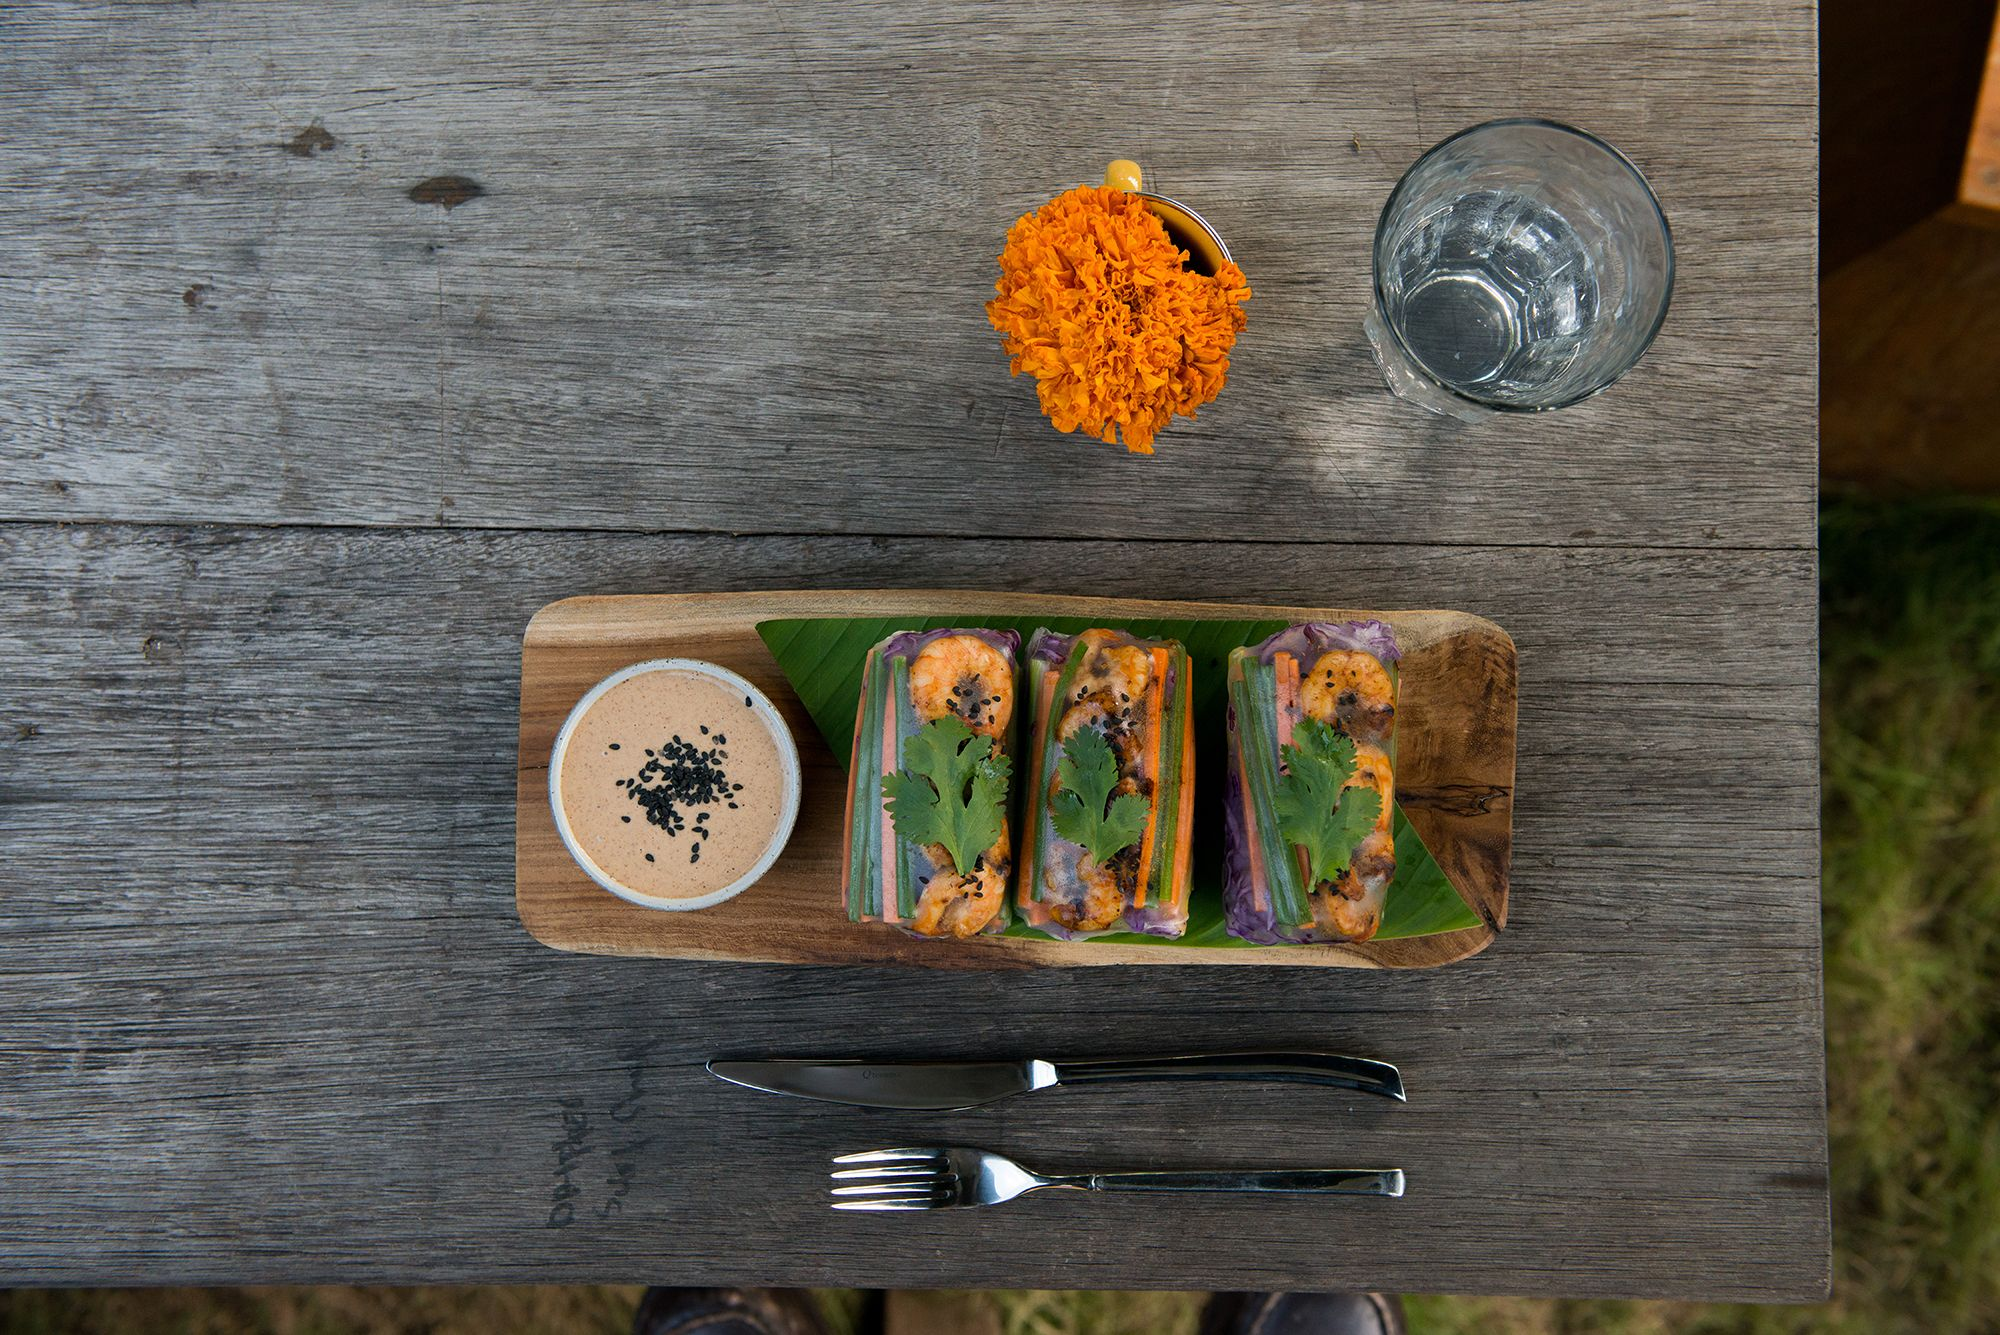 We visited DRIFTER CAFÉ for our afternoon caffeine fix and sampled their deliciously decadent + healthy dishes, served up on Jenggala-ware